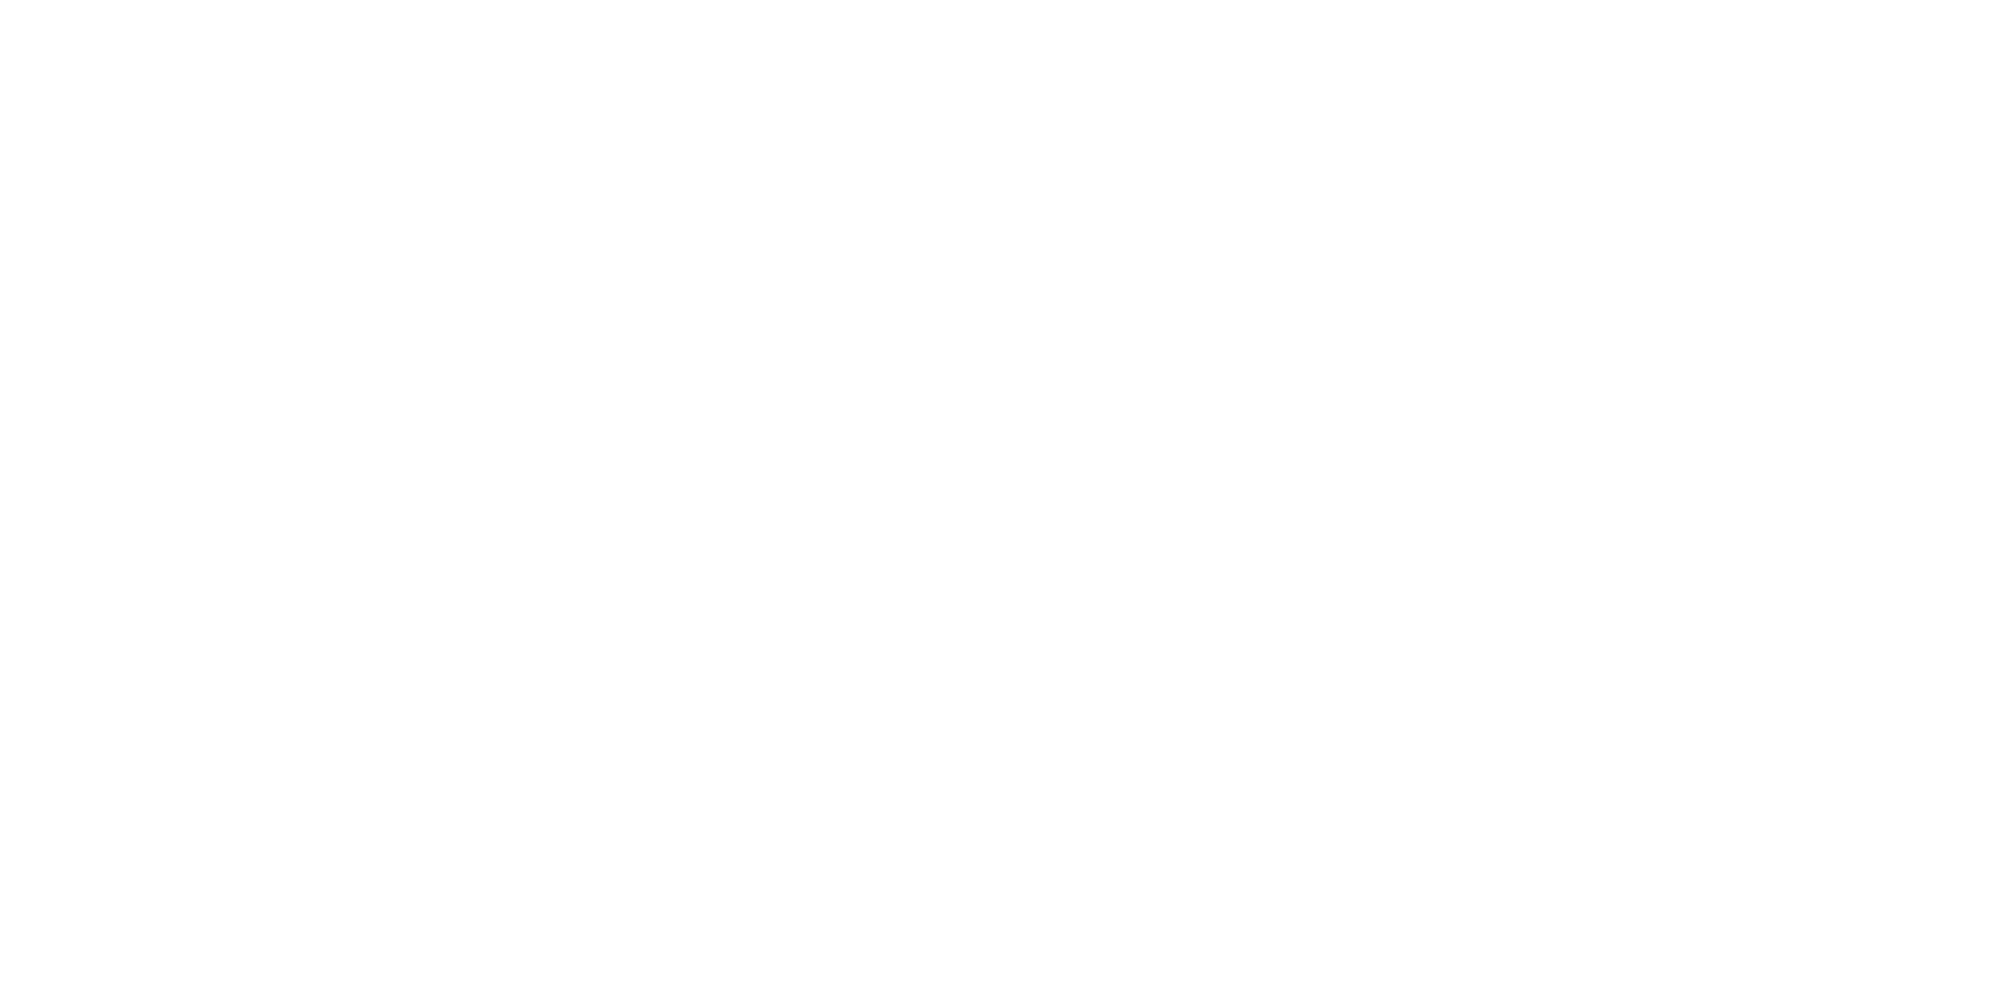 La newsletter Sciencetips